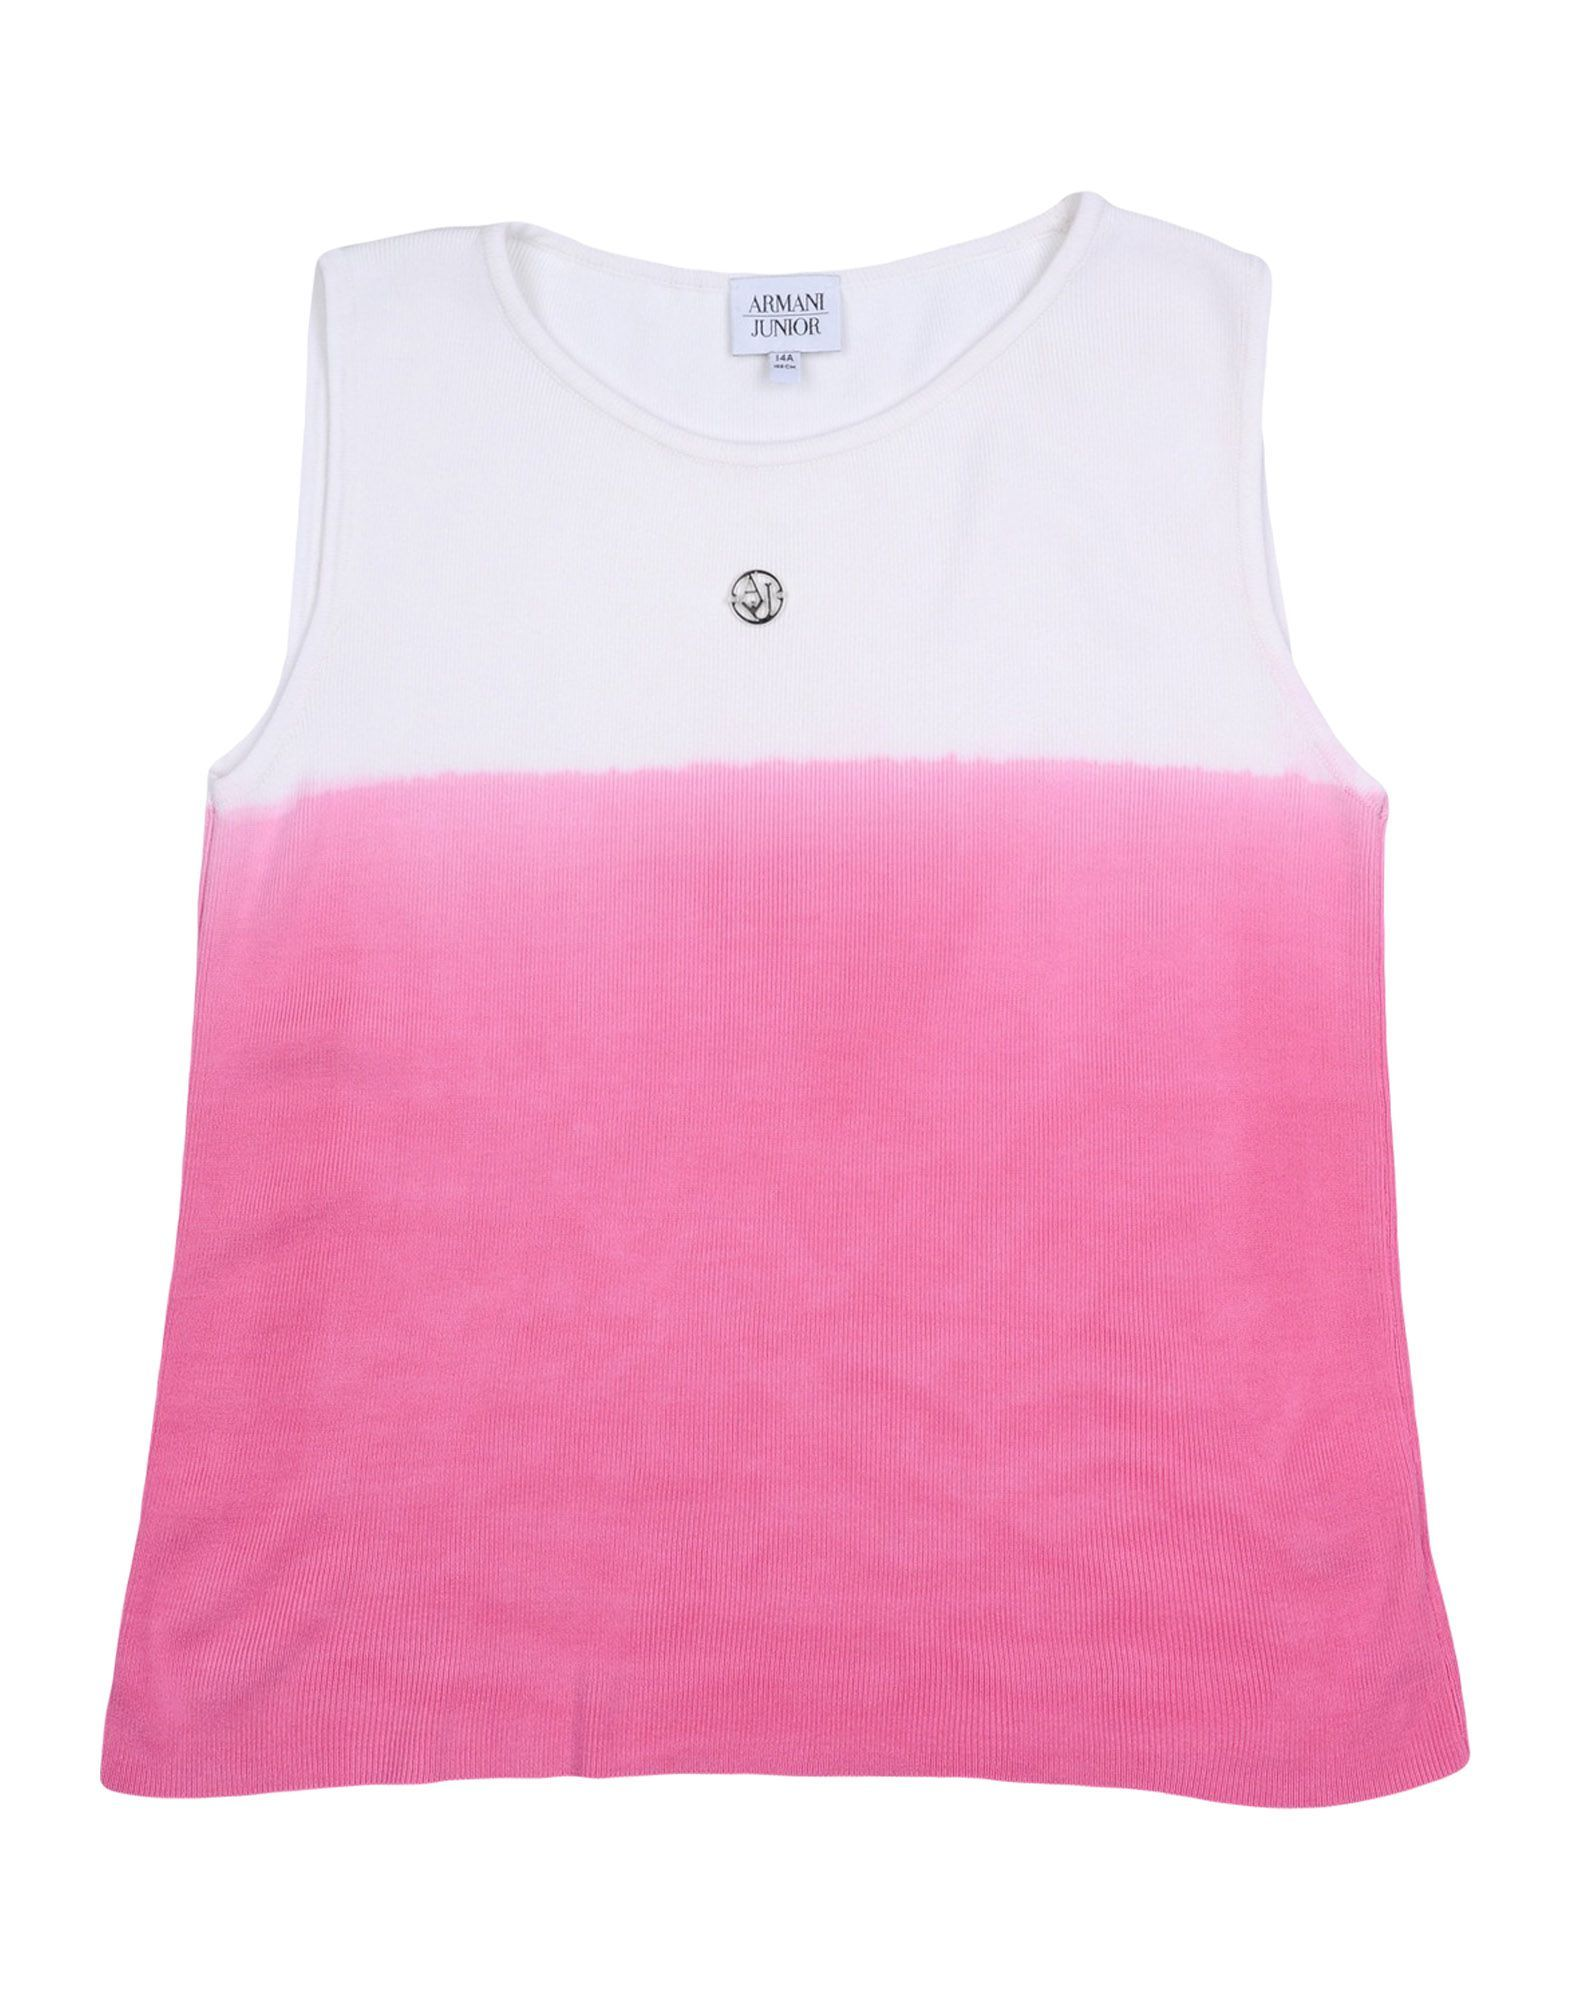 KNITWEAR Armani Junior Pink Girl Viscose